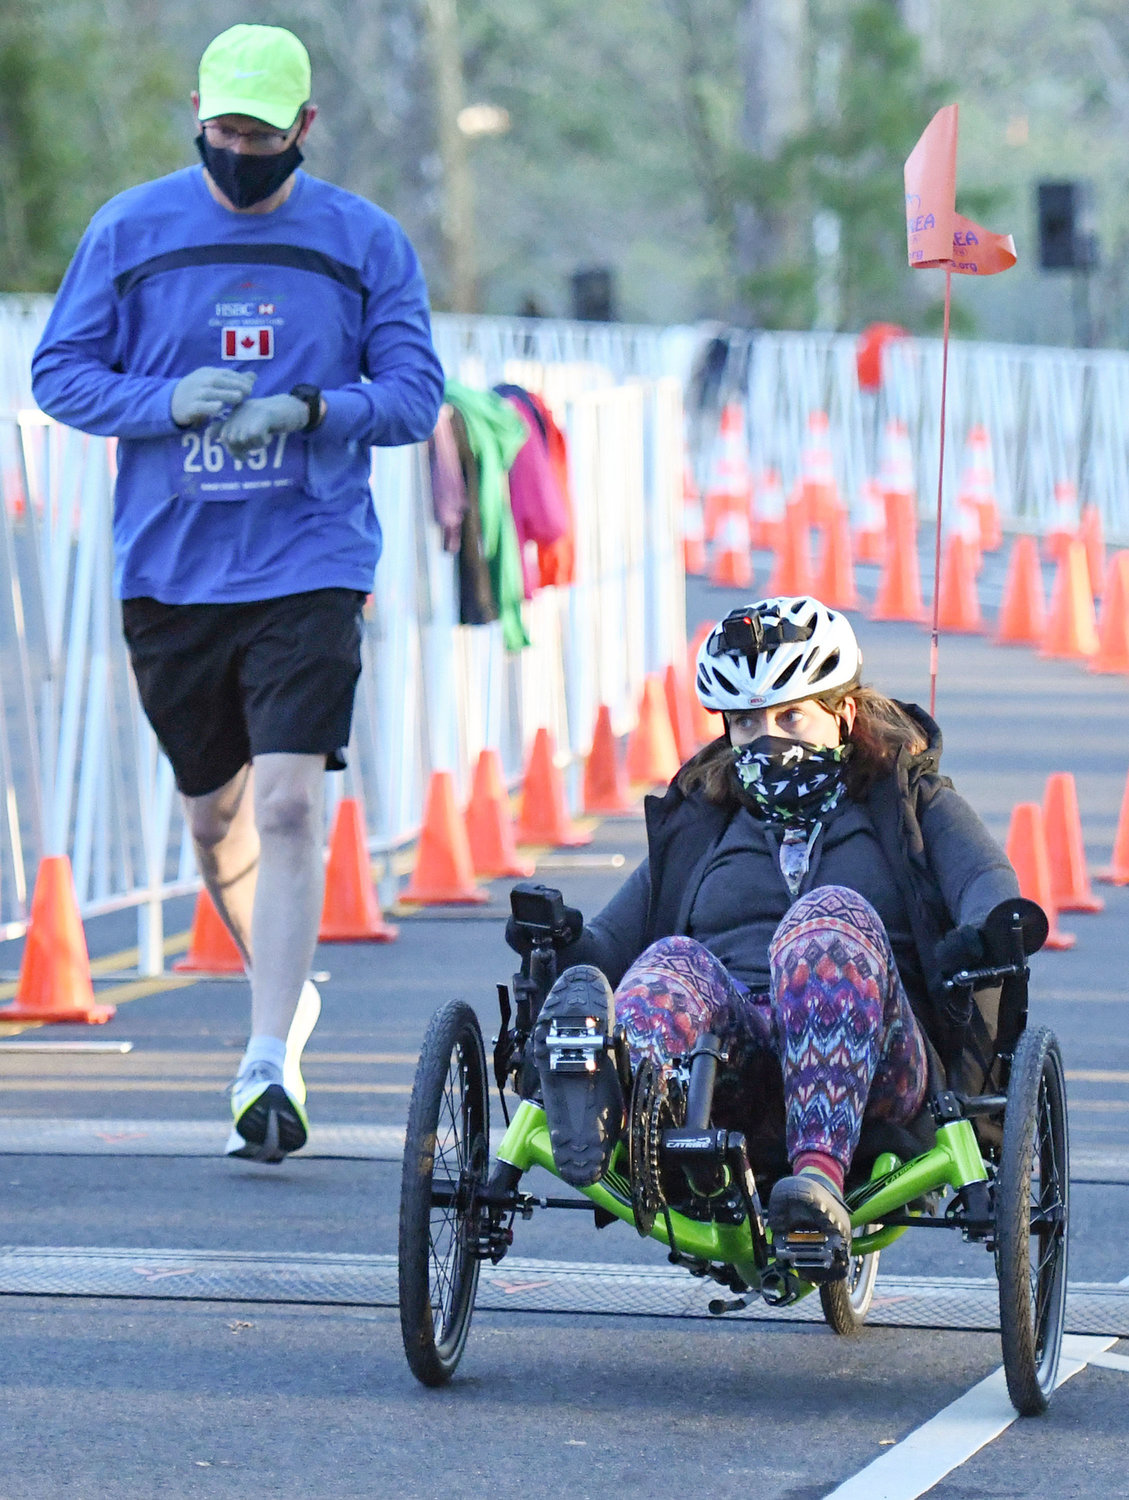 Andrea Lytle Peet, an athlete with ALS, is on a quest to be the first person with ALS to complete a marathon in each of the 50 states. Salisbury's event was No. 26 in her journey.